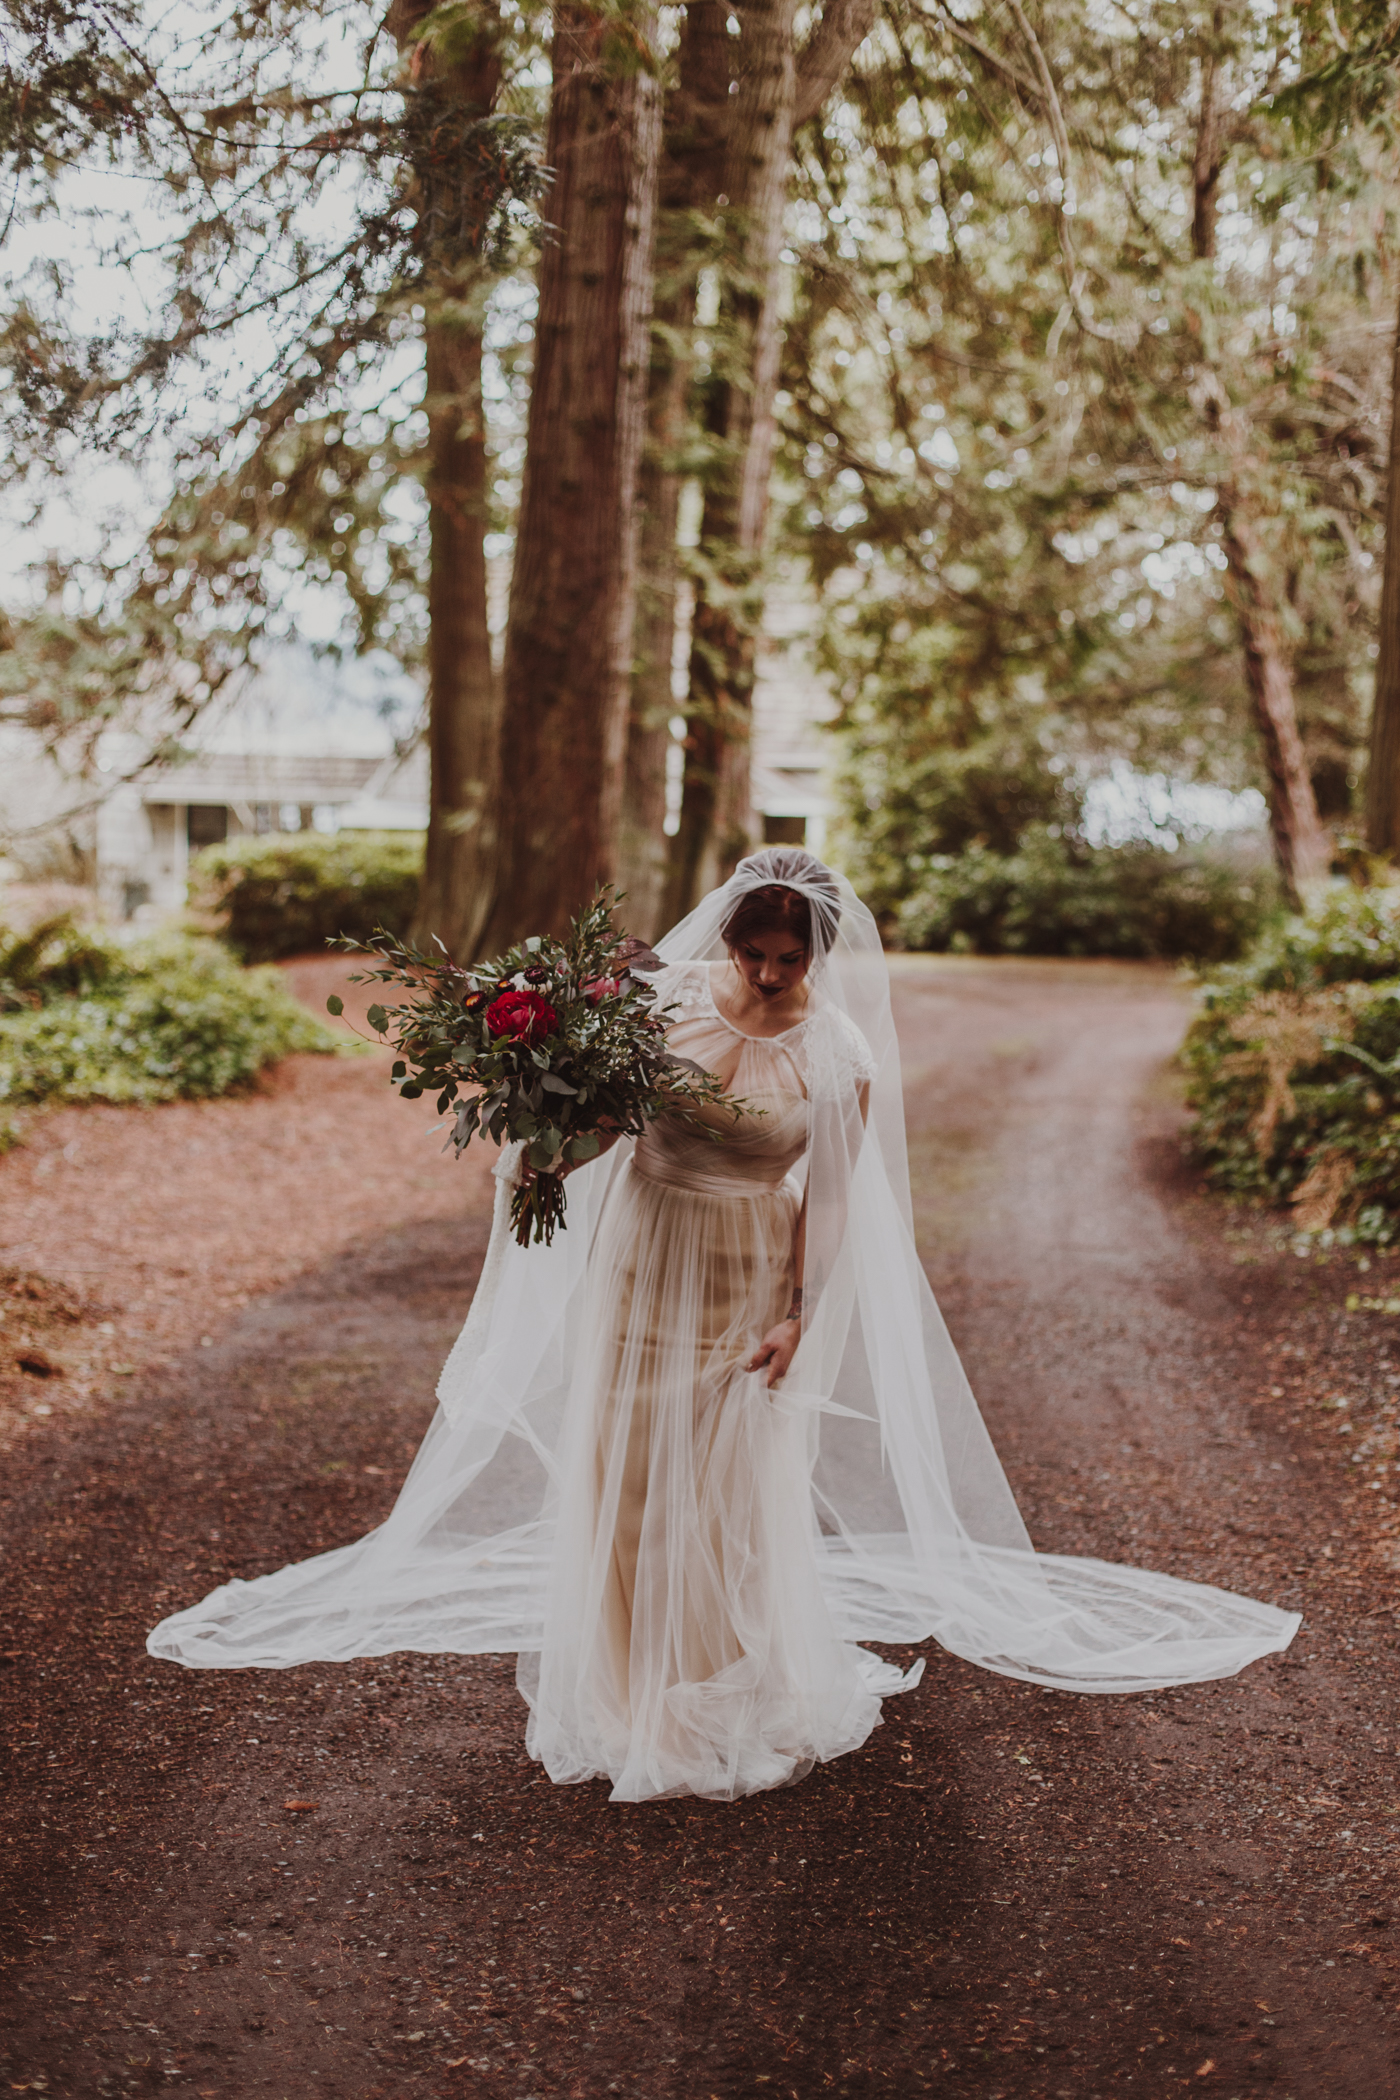 Olympic Peninsula Elopement-LizMorrow-29.jpg